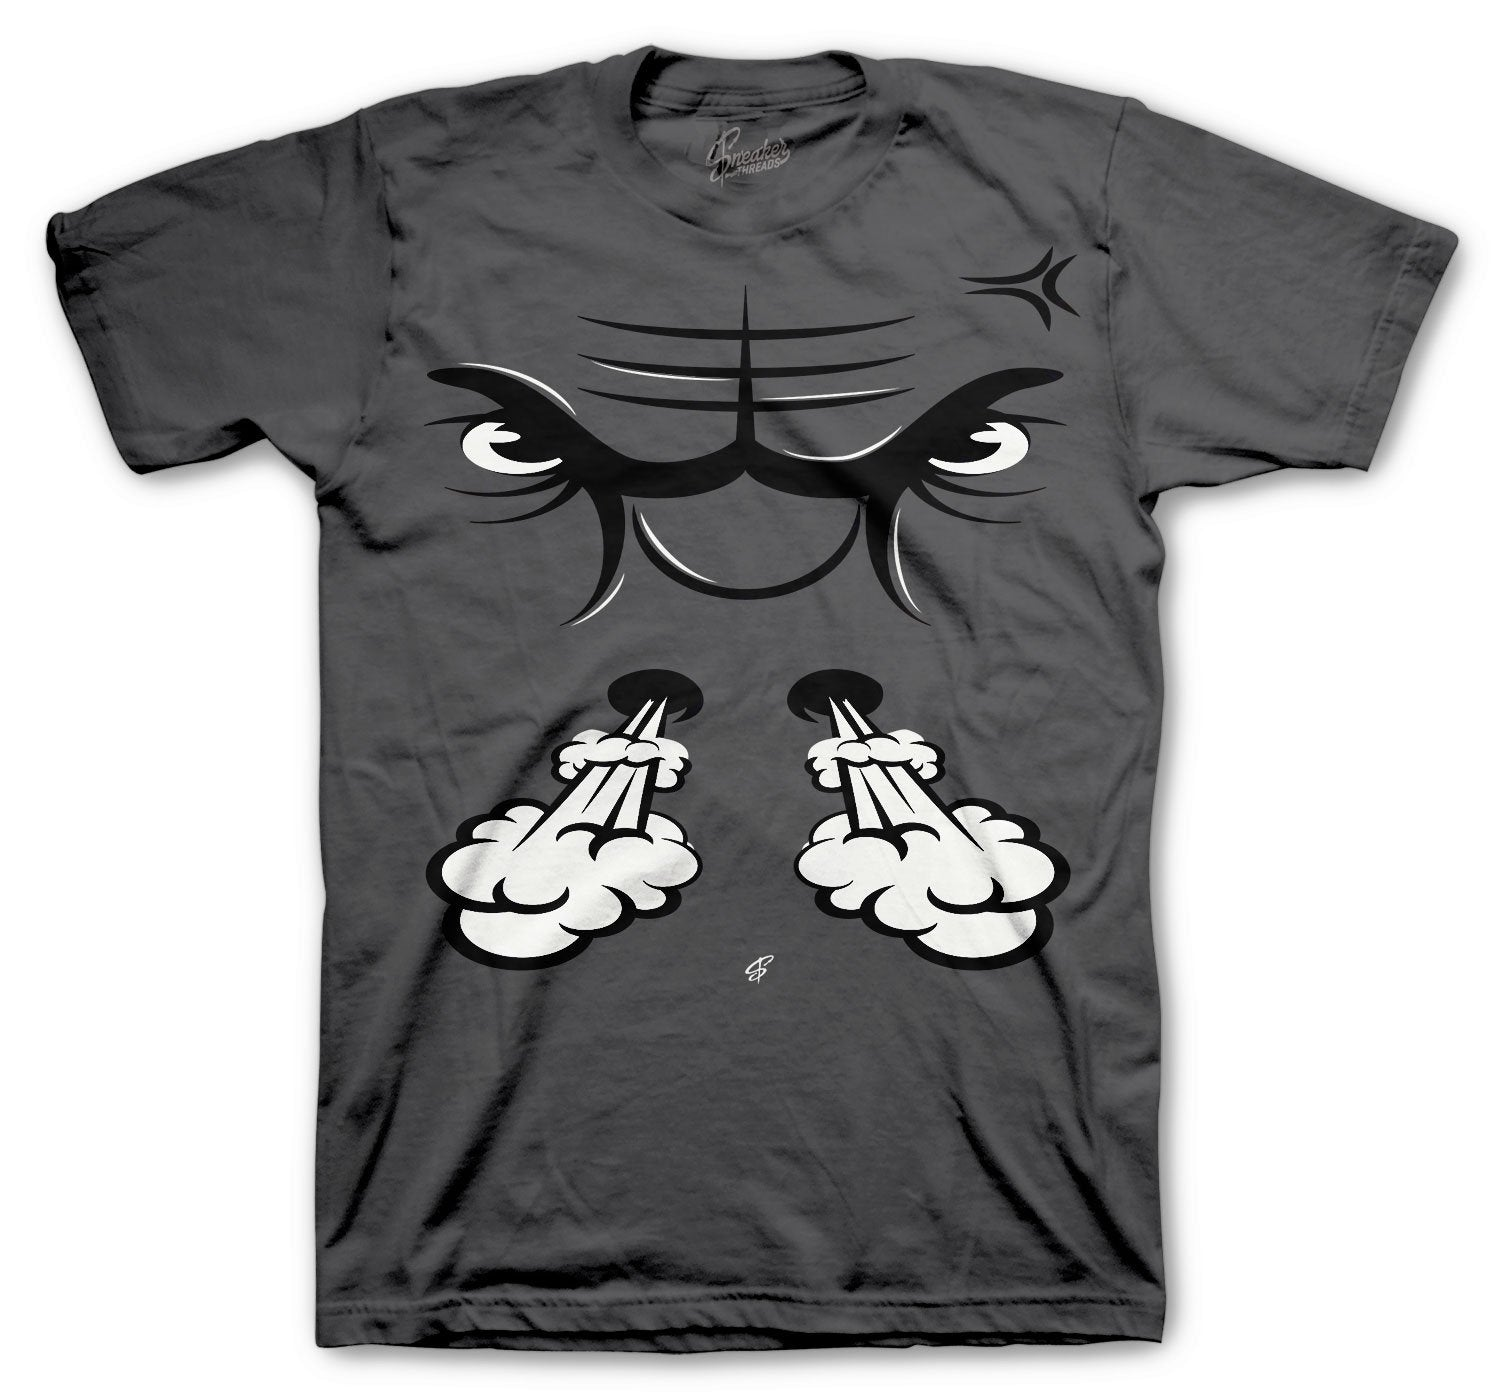 Jordan Bullface fresh shirt for Black 14's